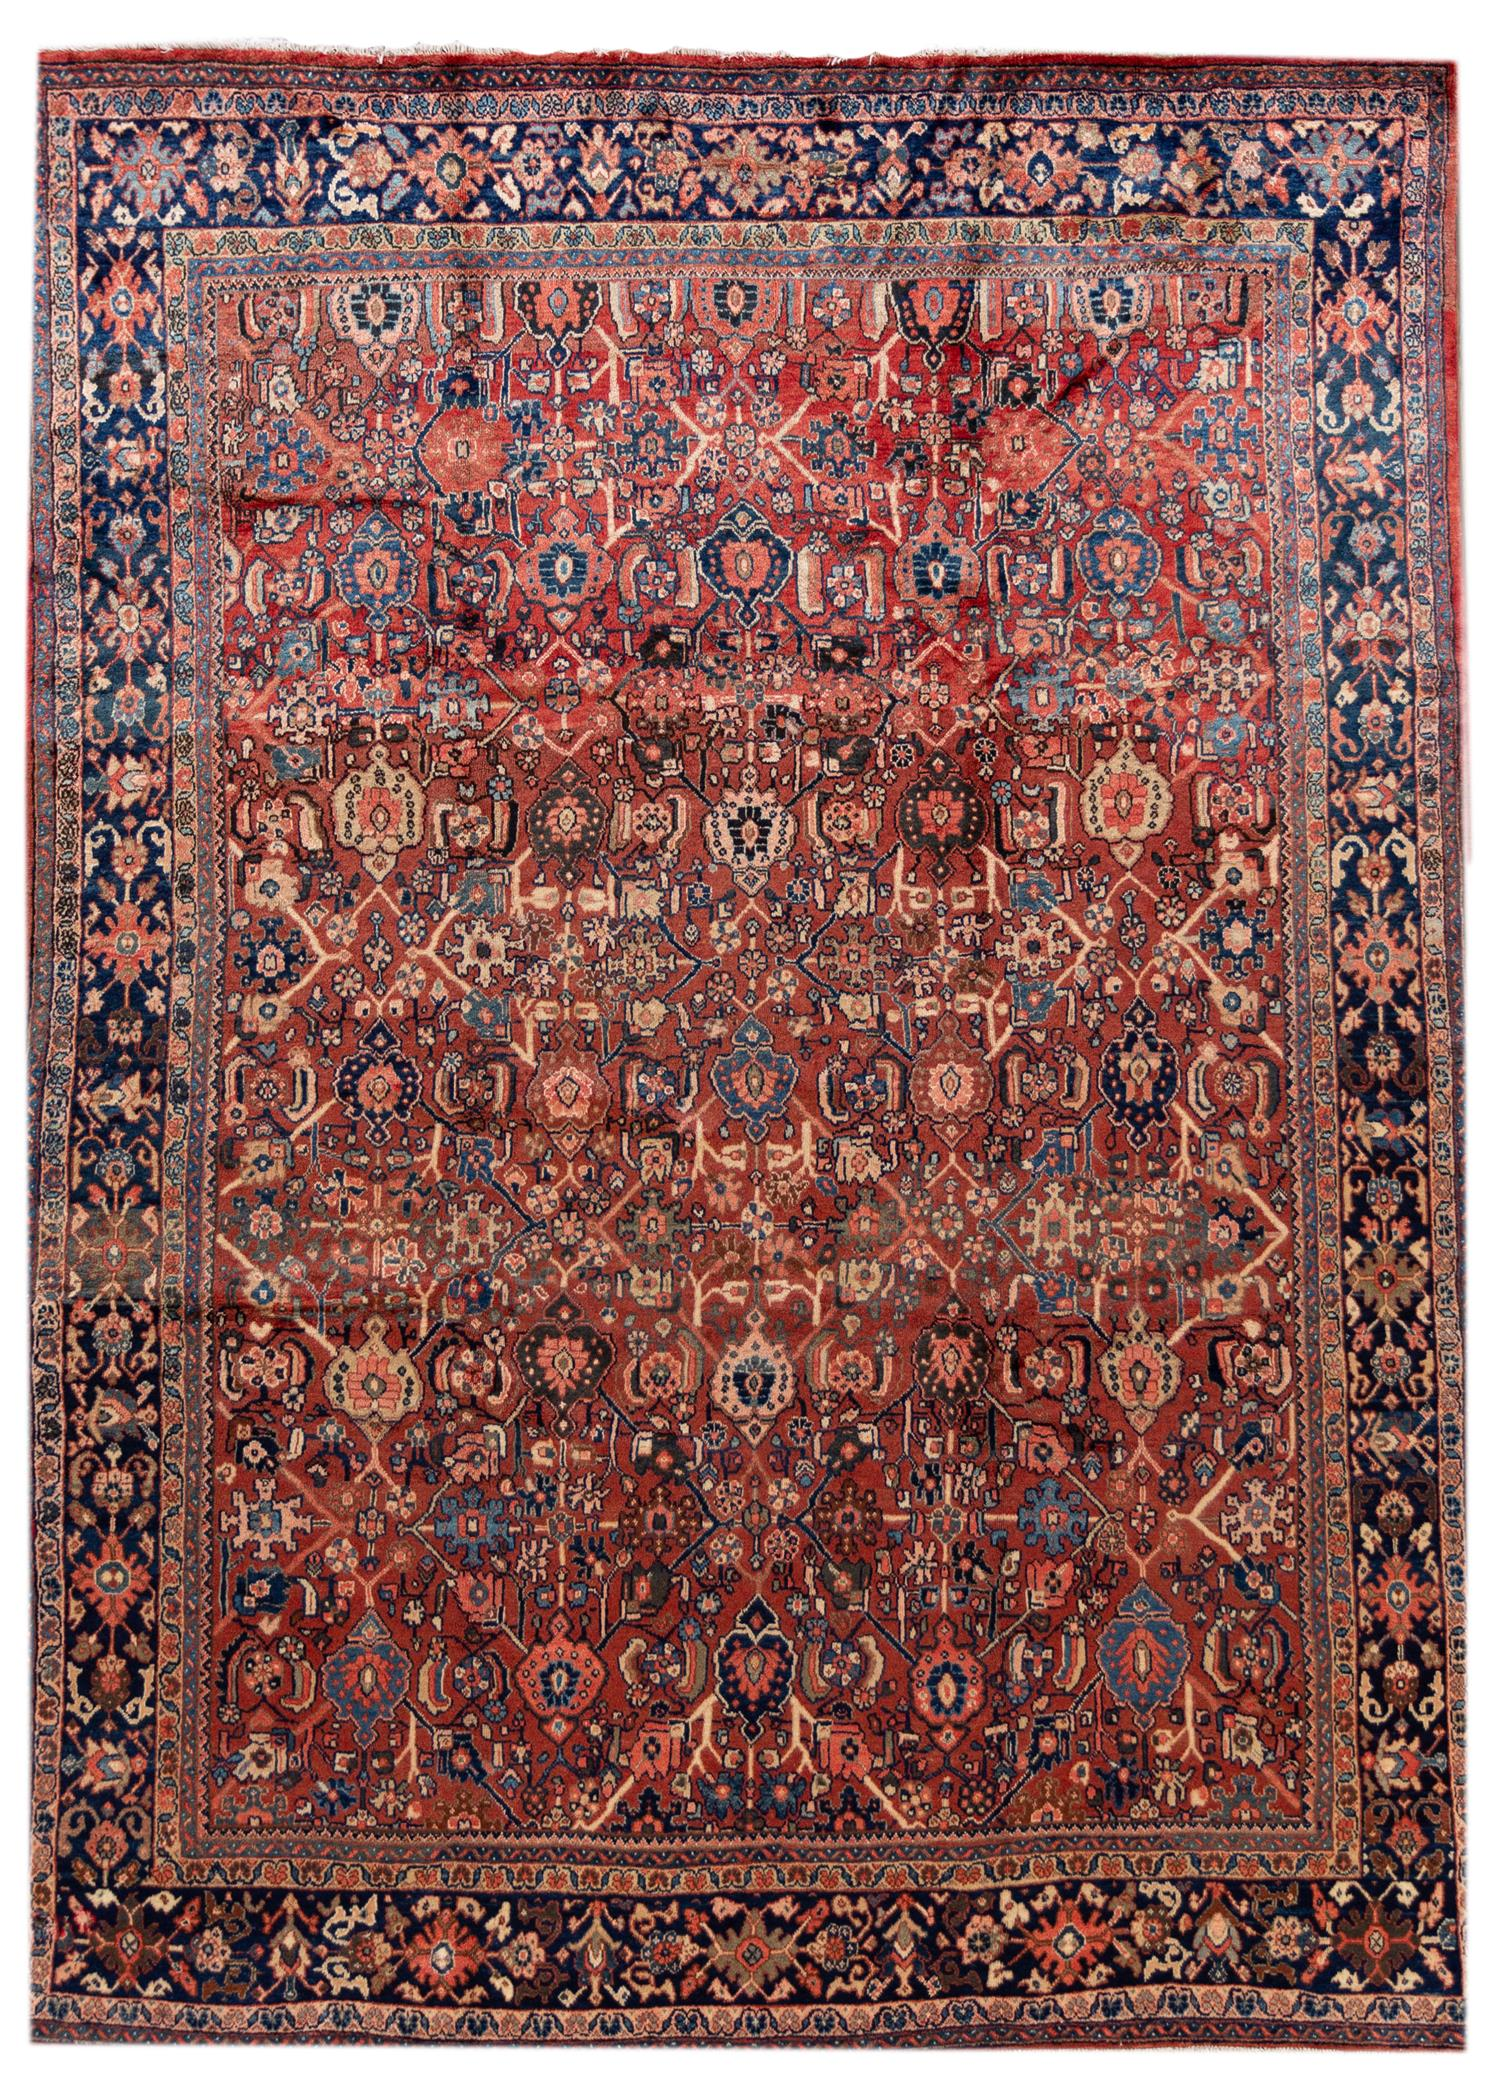 Antique 20th Century Mahal Rug, 9X12